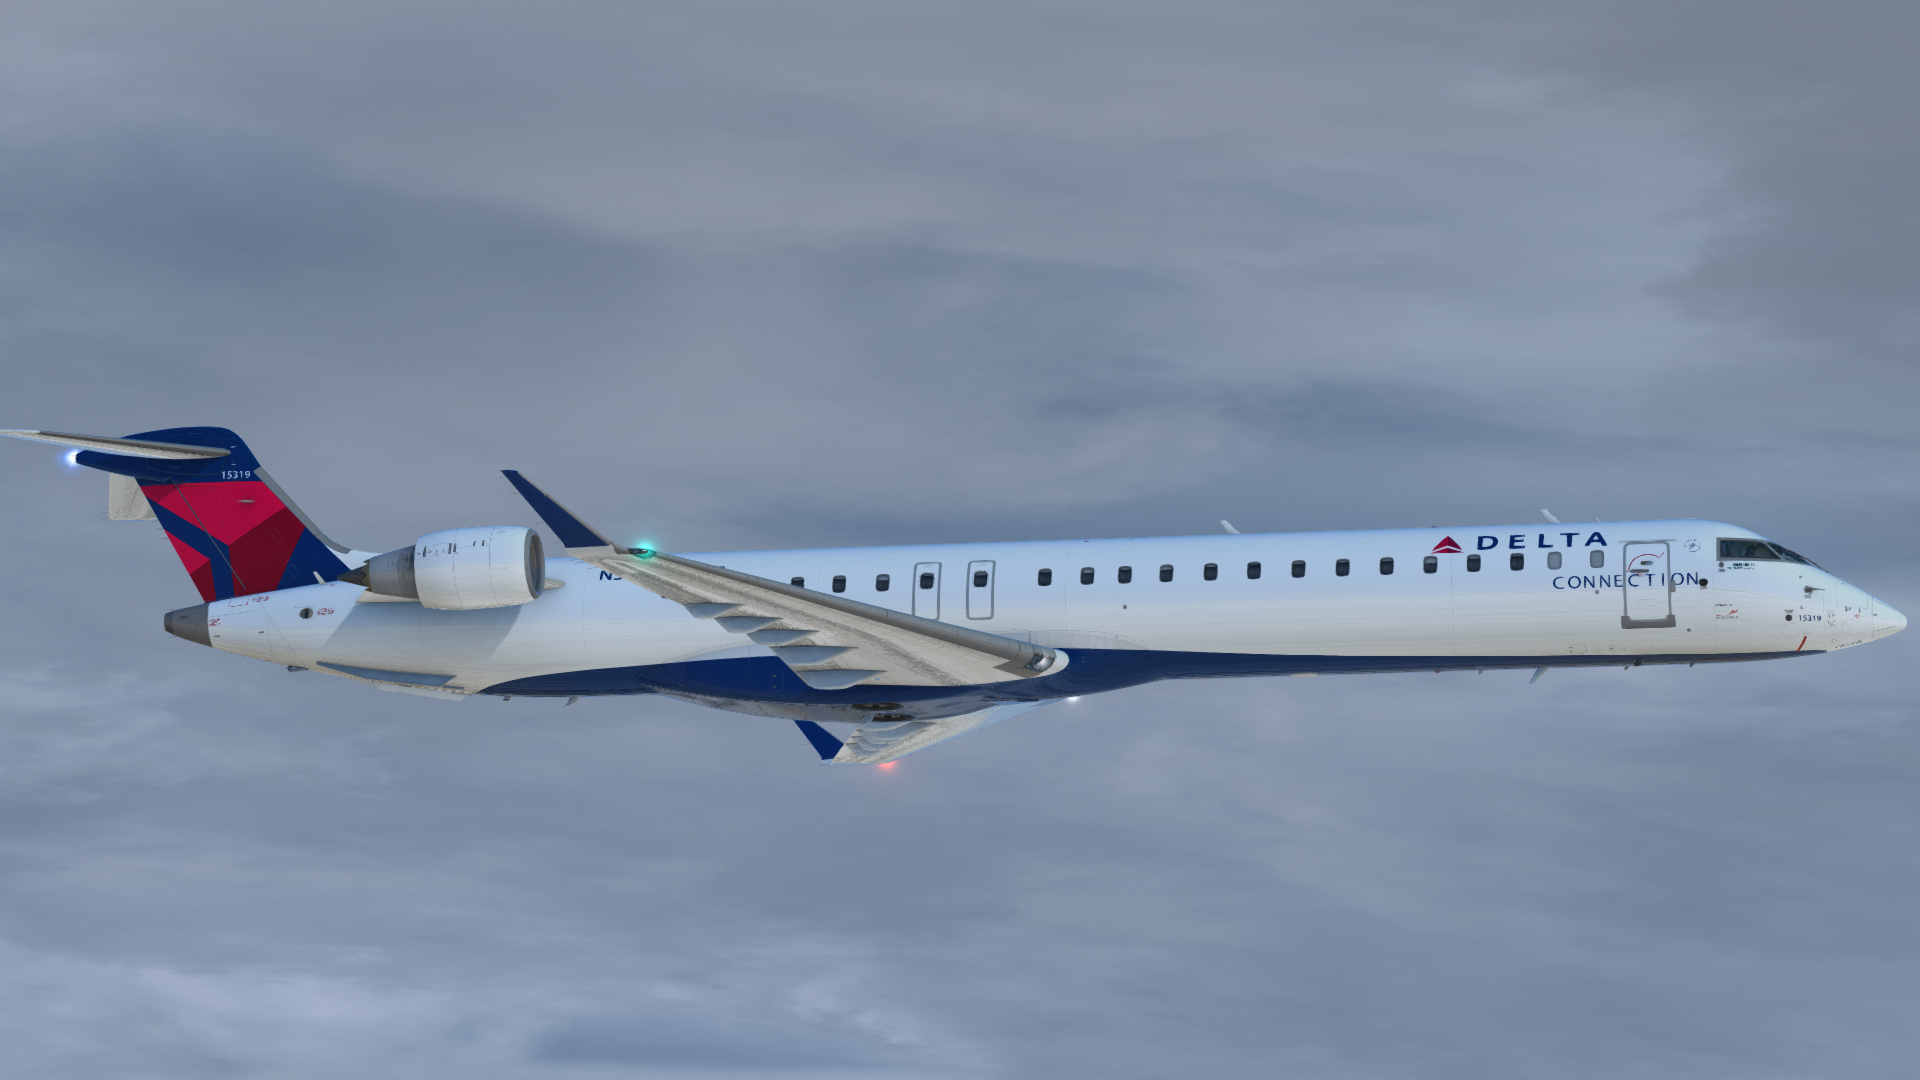 Aerosoft CRJ - Click the download button to start downloading the Reflection Profiles for the Aerosoft CRJ.